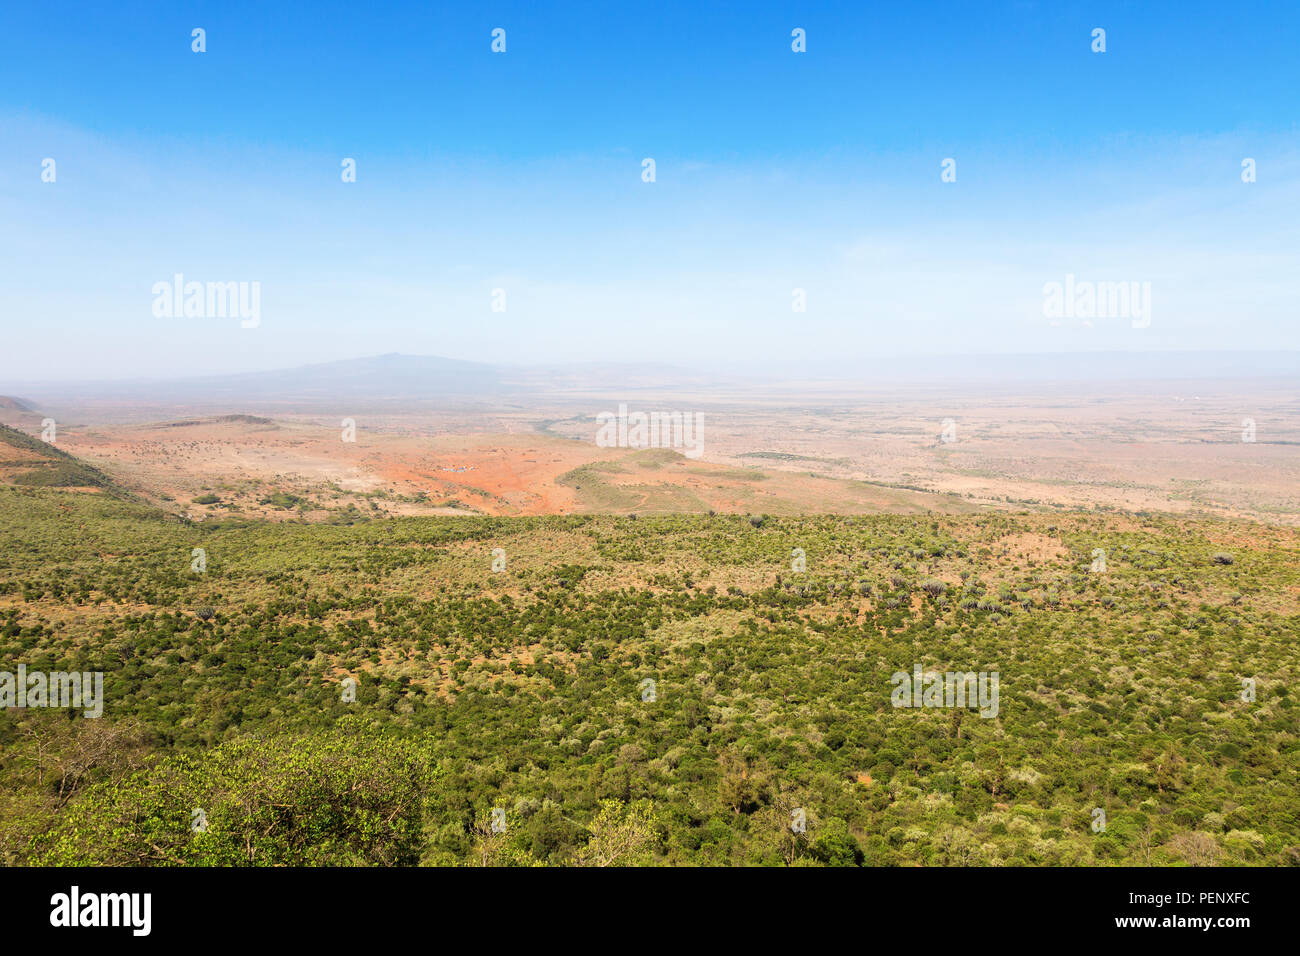 View of the Rift Valley in Kenya Stock Photo